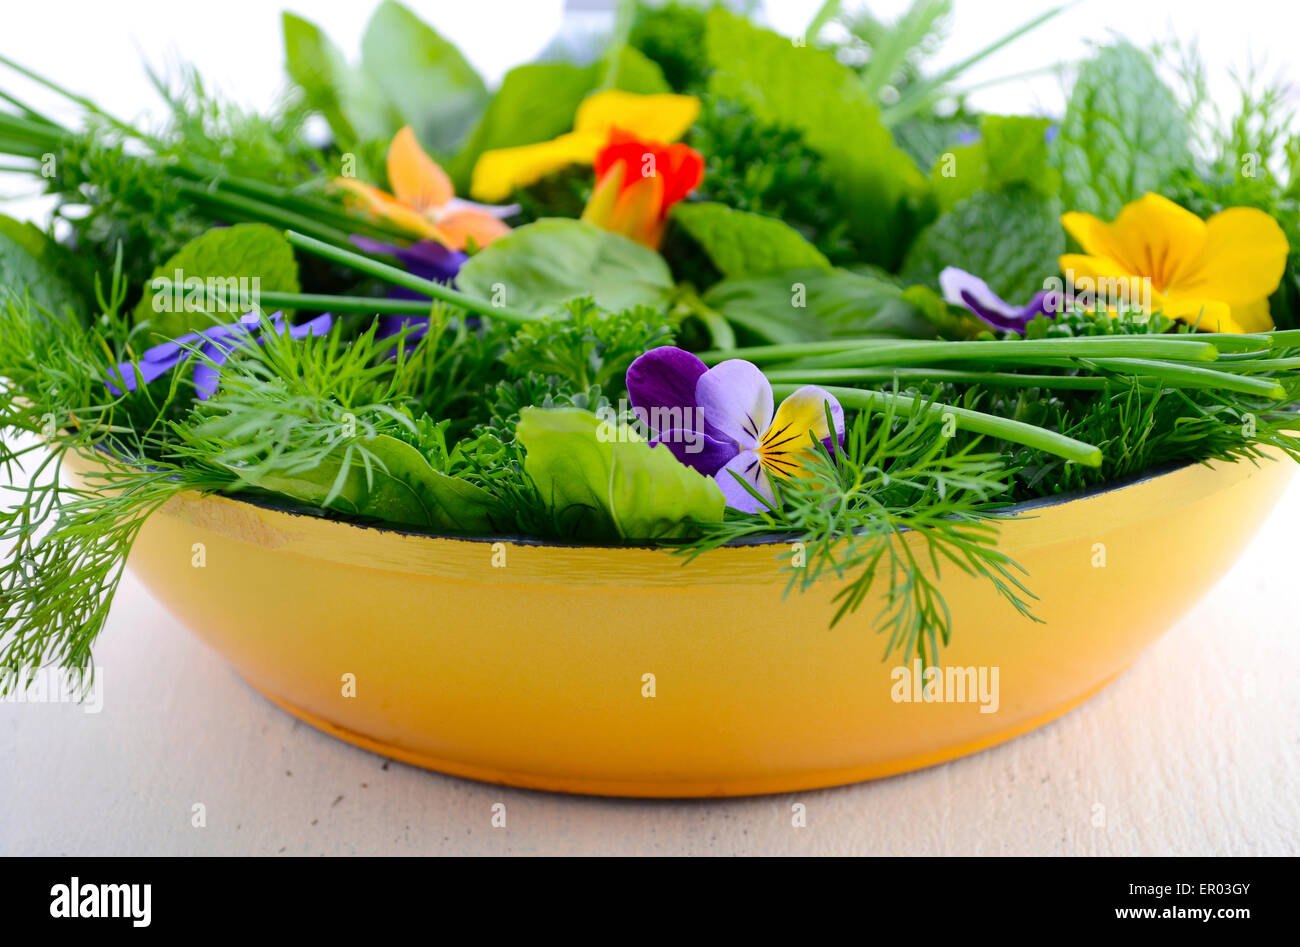 Cooking With Herbs Concept With Fresh Herbs And Edible Flowers In